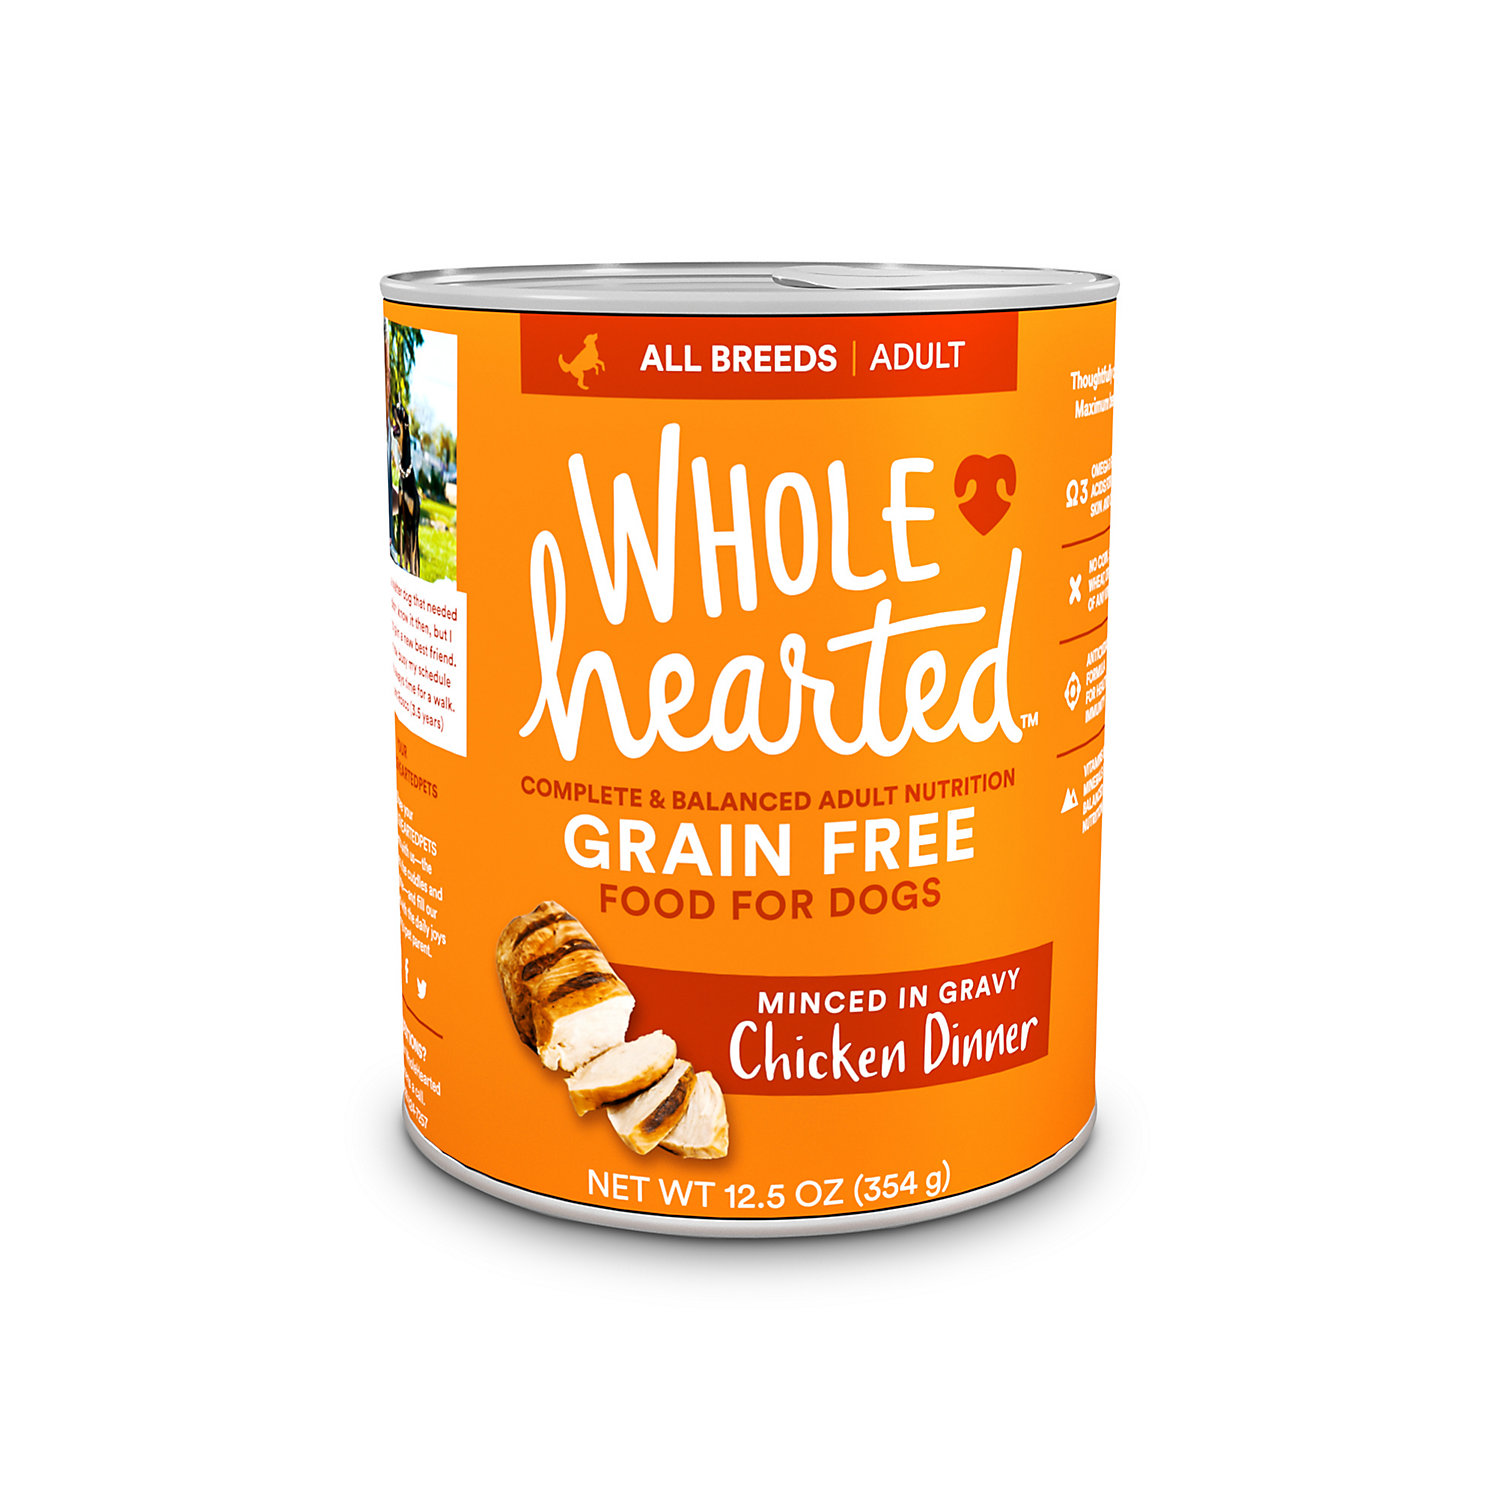 WholeHearted Grain-Free Adult Chicken Dinner Wet Dog Food - $17.52